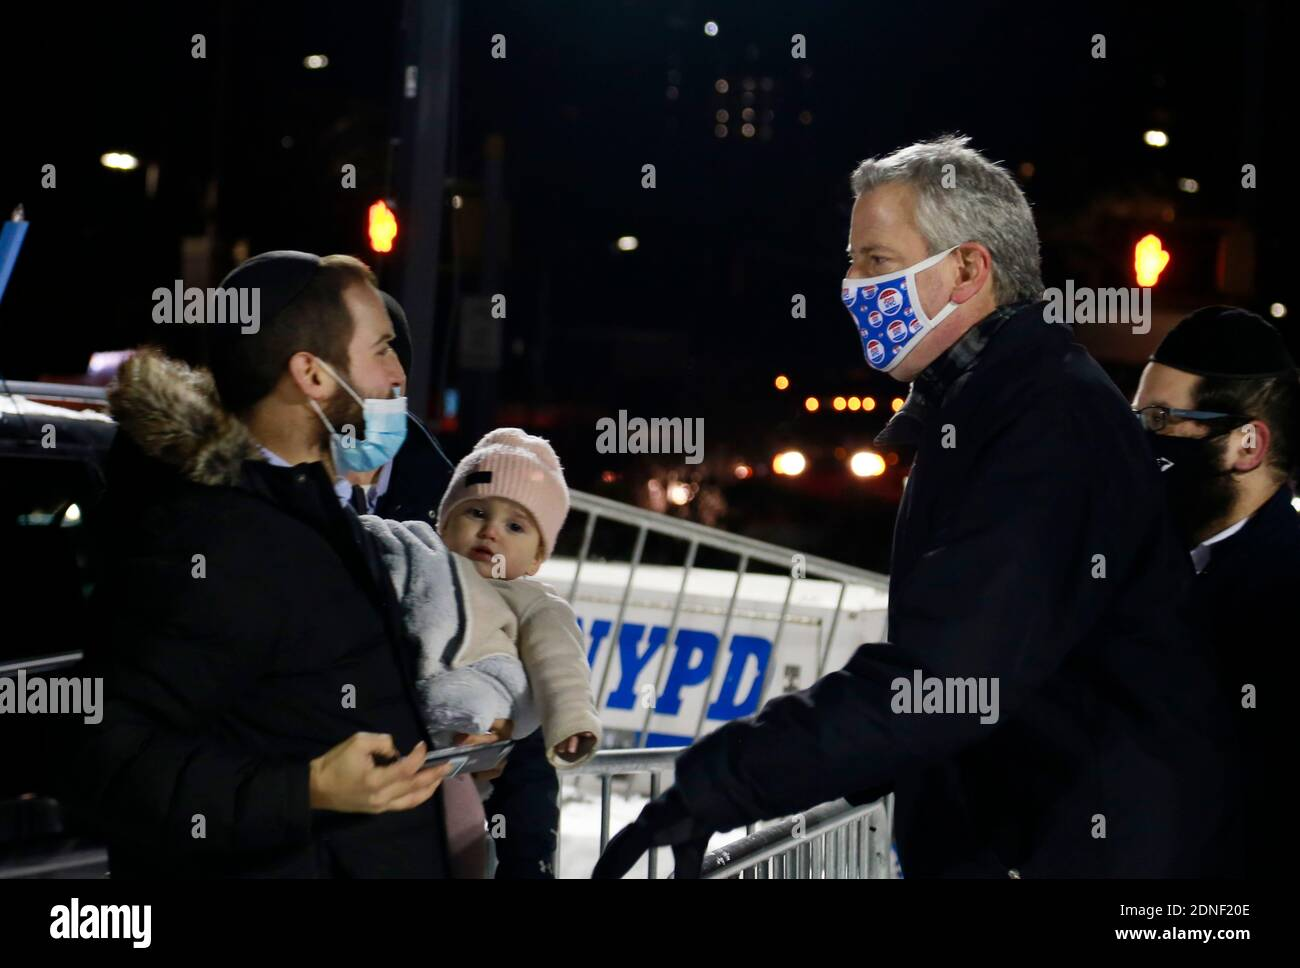 Brooklyn, New York, USA. 17th Dec, 2020. New York City Mayor Bill De Blasio attends the lighting of the largest Menorah in Brooklyn held at Grand Army Plaza in the Park Slope section of Brooklyn, New York City on December 17, 2020. Credit: Mpi43/Media Punch/Alamy Live News Stock Photo